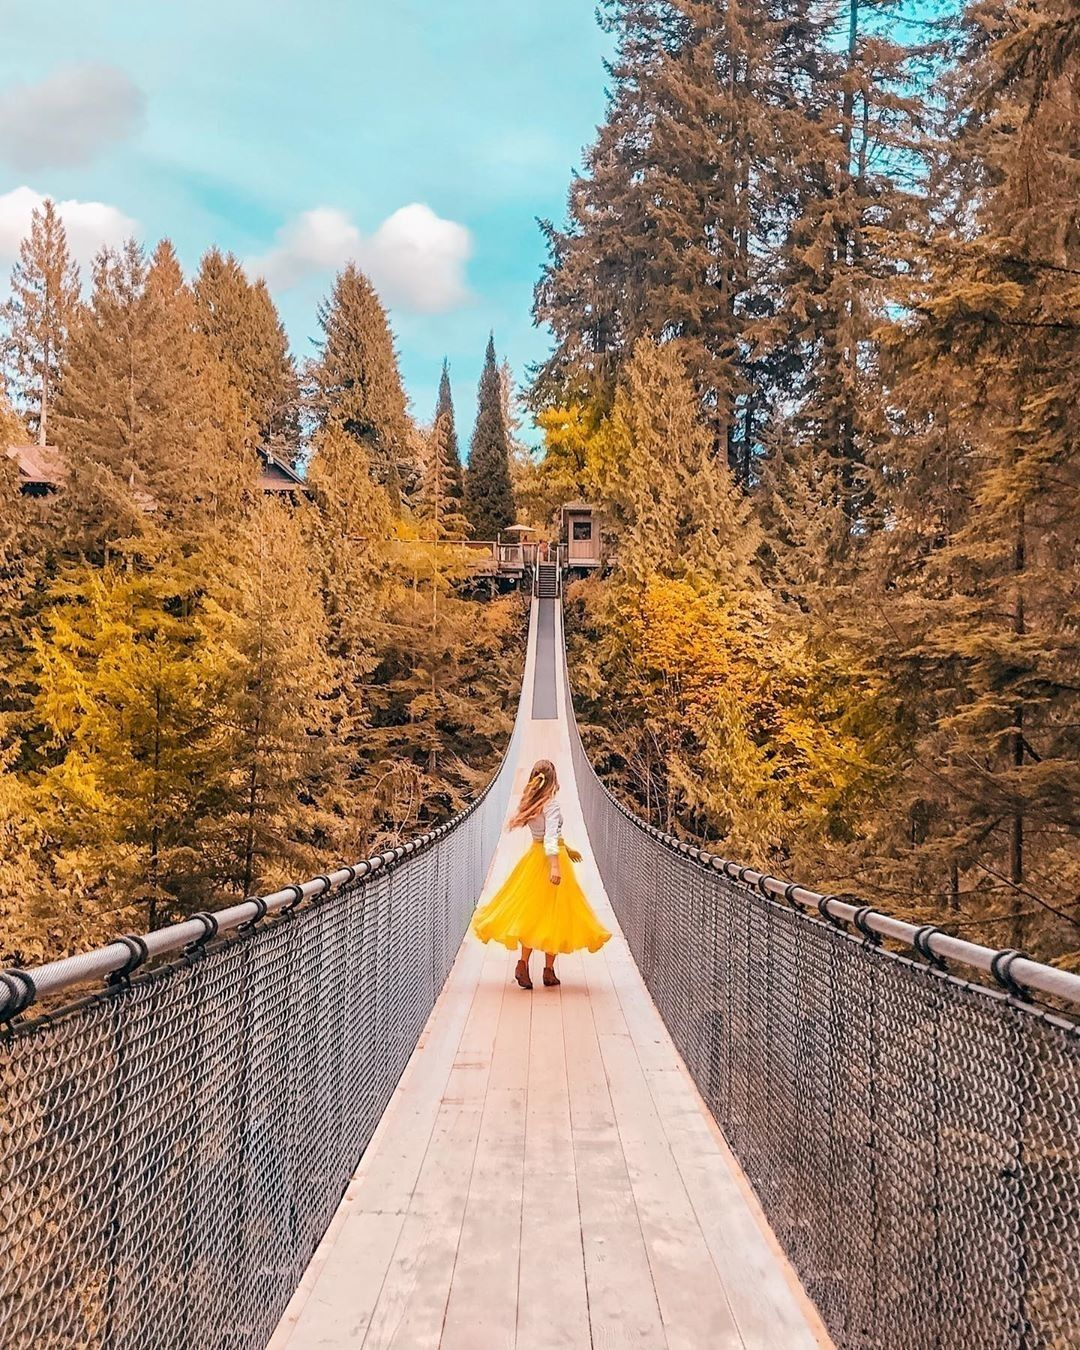 9 Photogenic Suspension Bridges to Visit Around the World